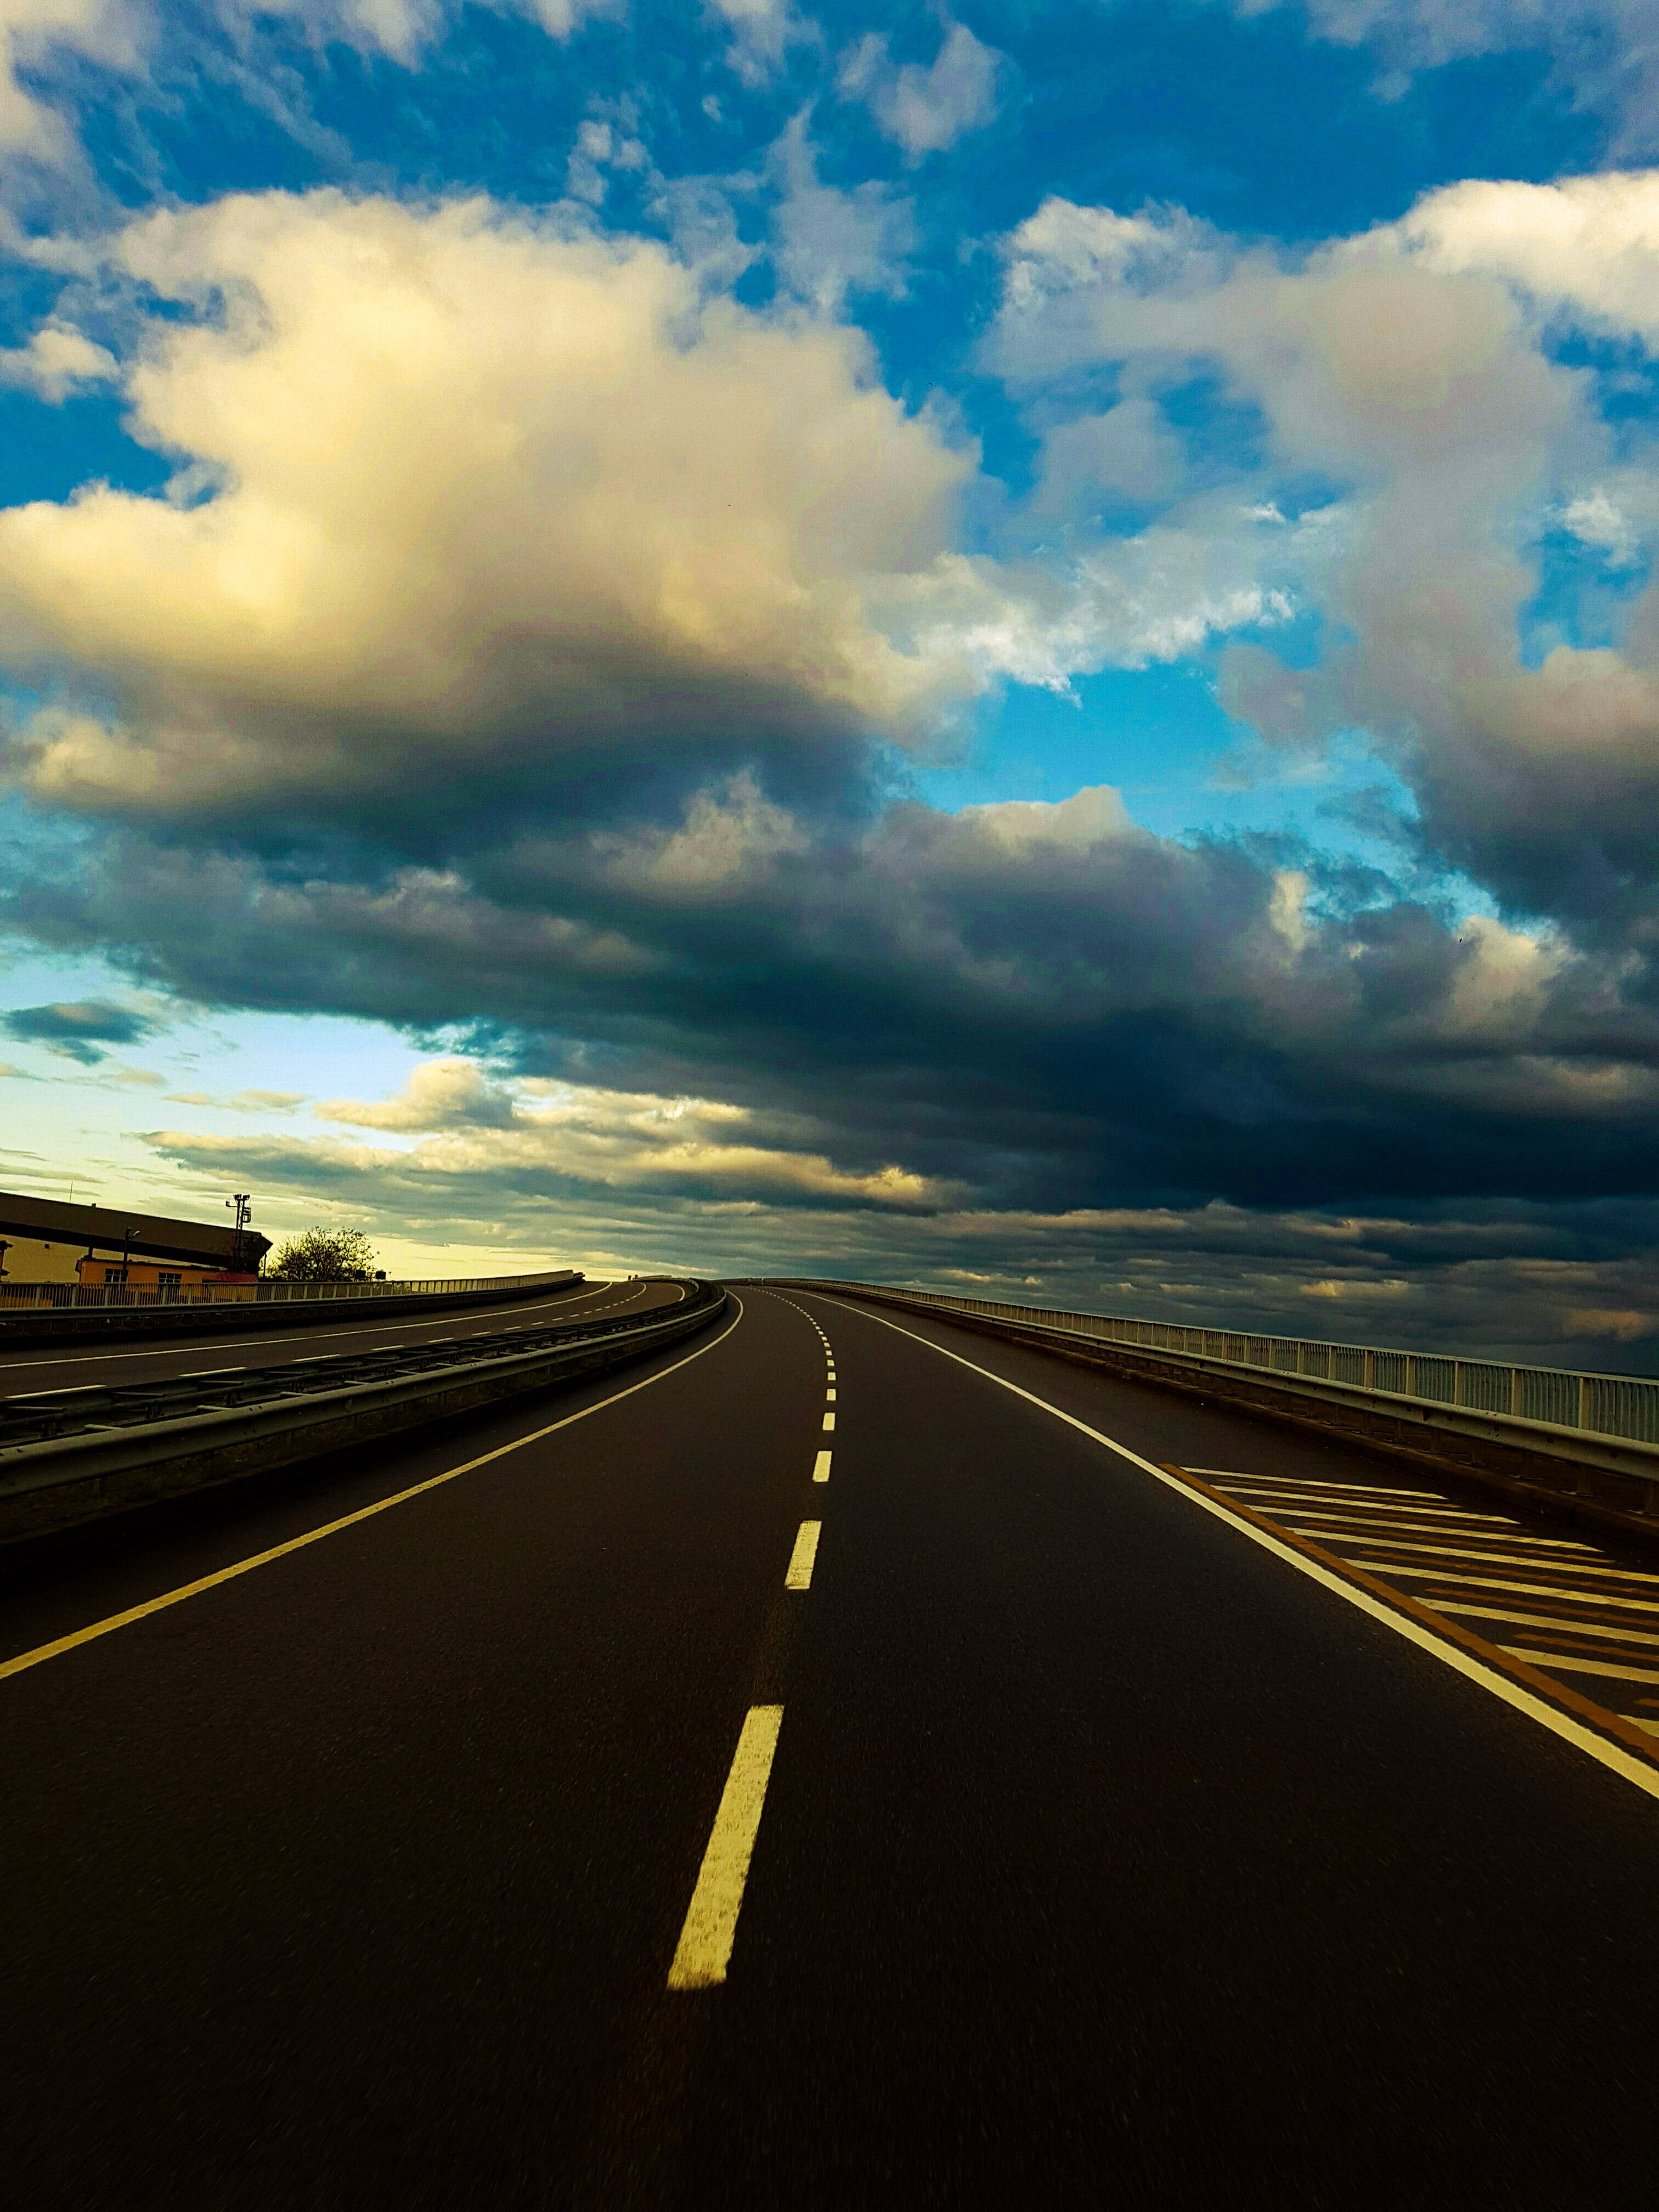 Road Under Gray Clouds